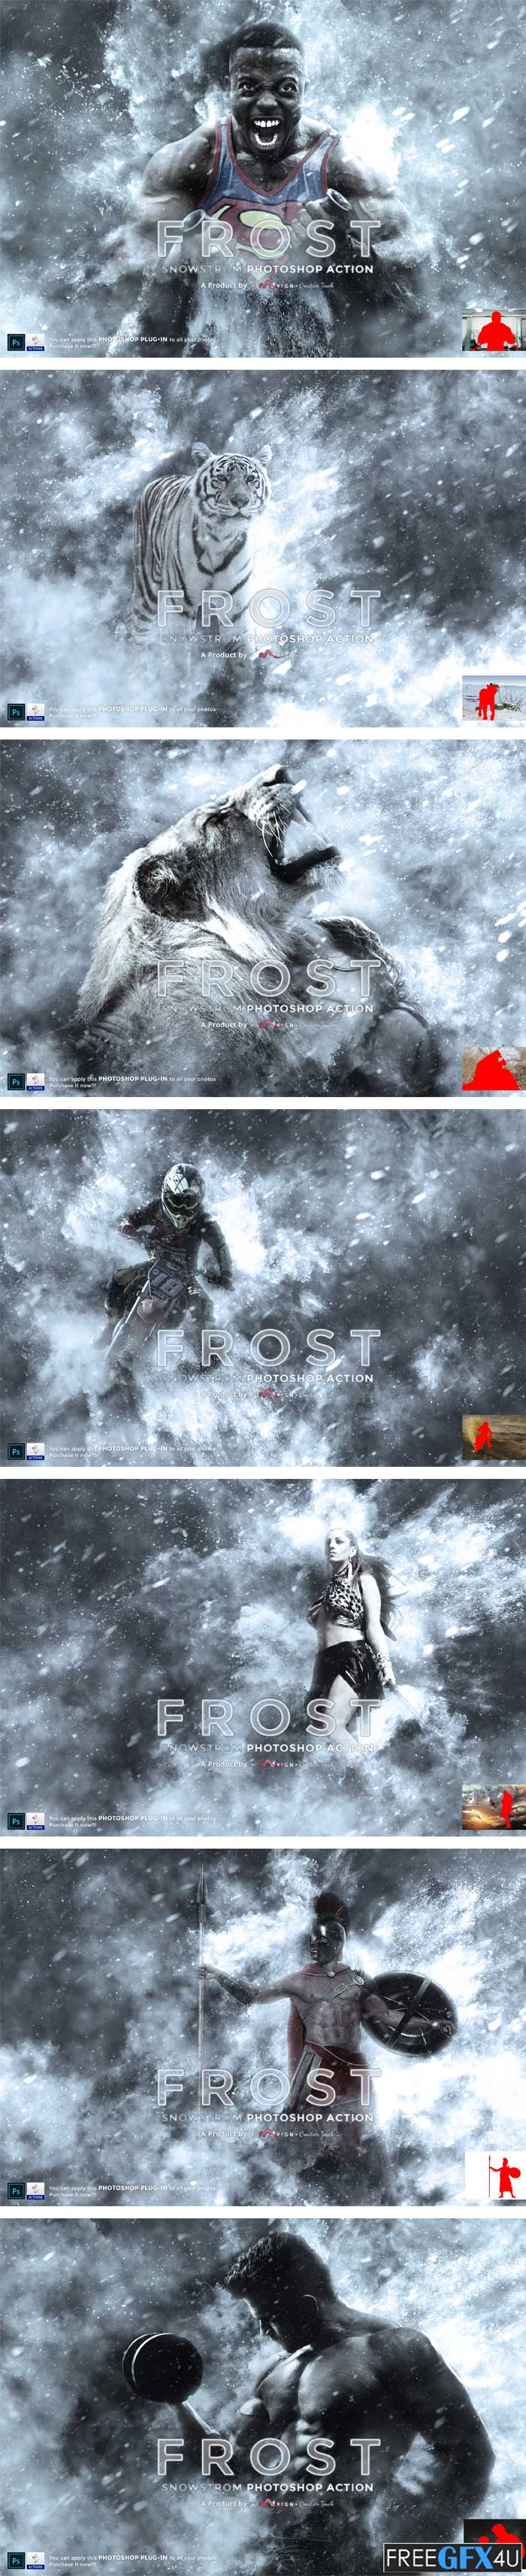 Frost Snowstorm Photoshop Action